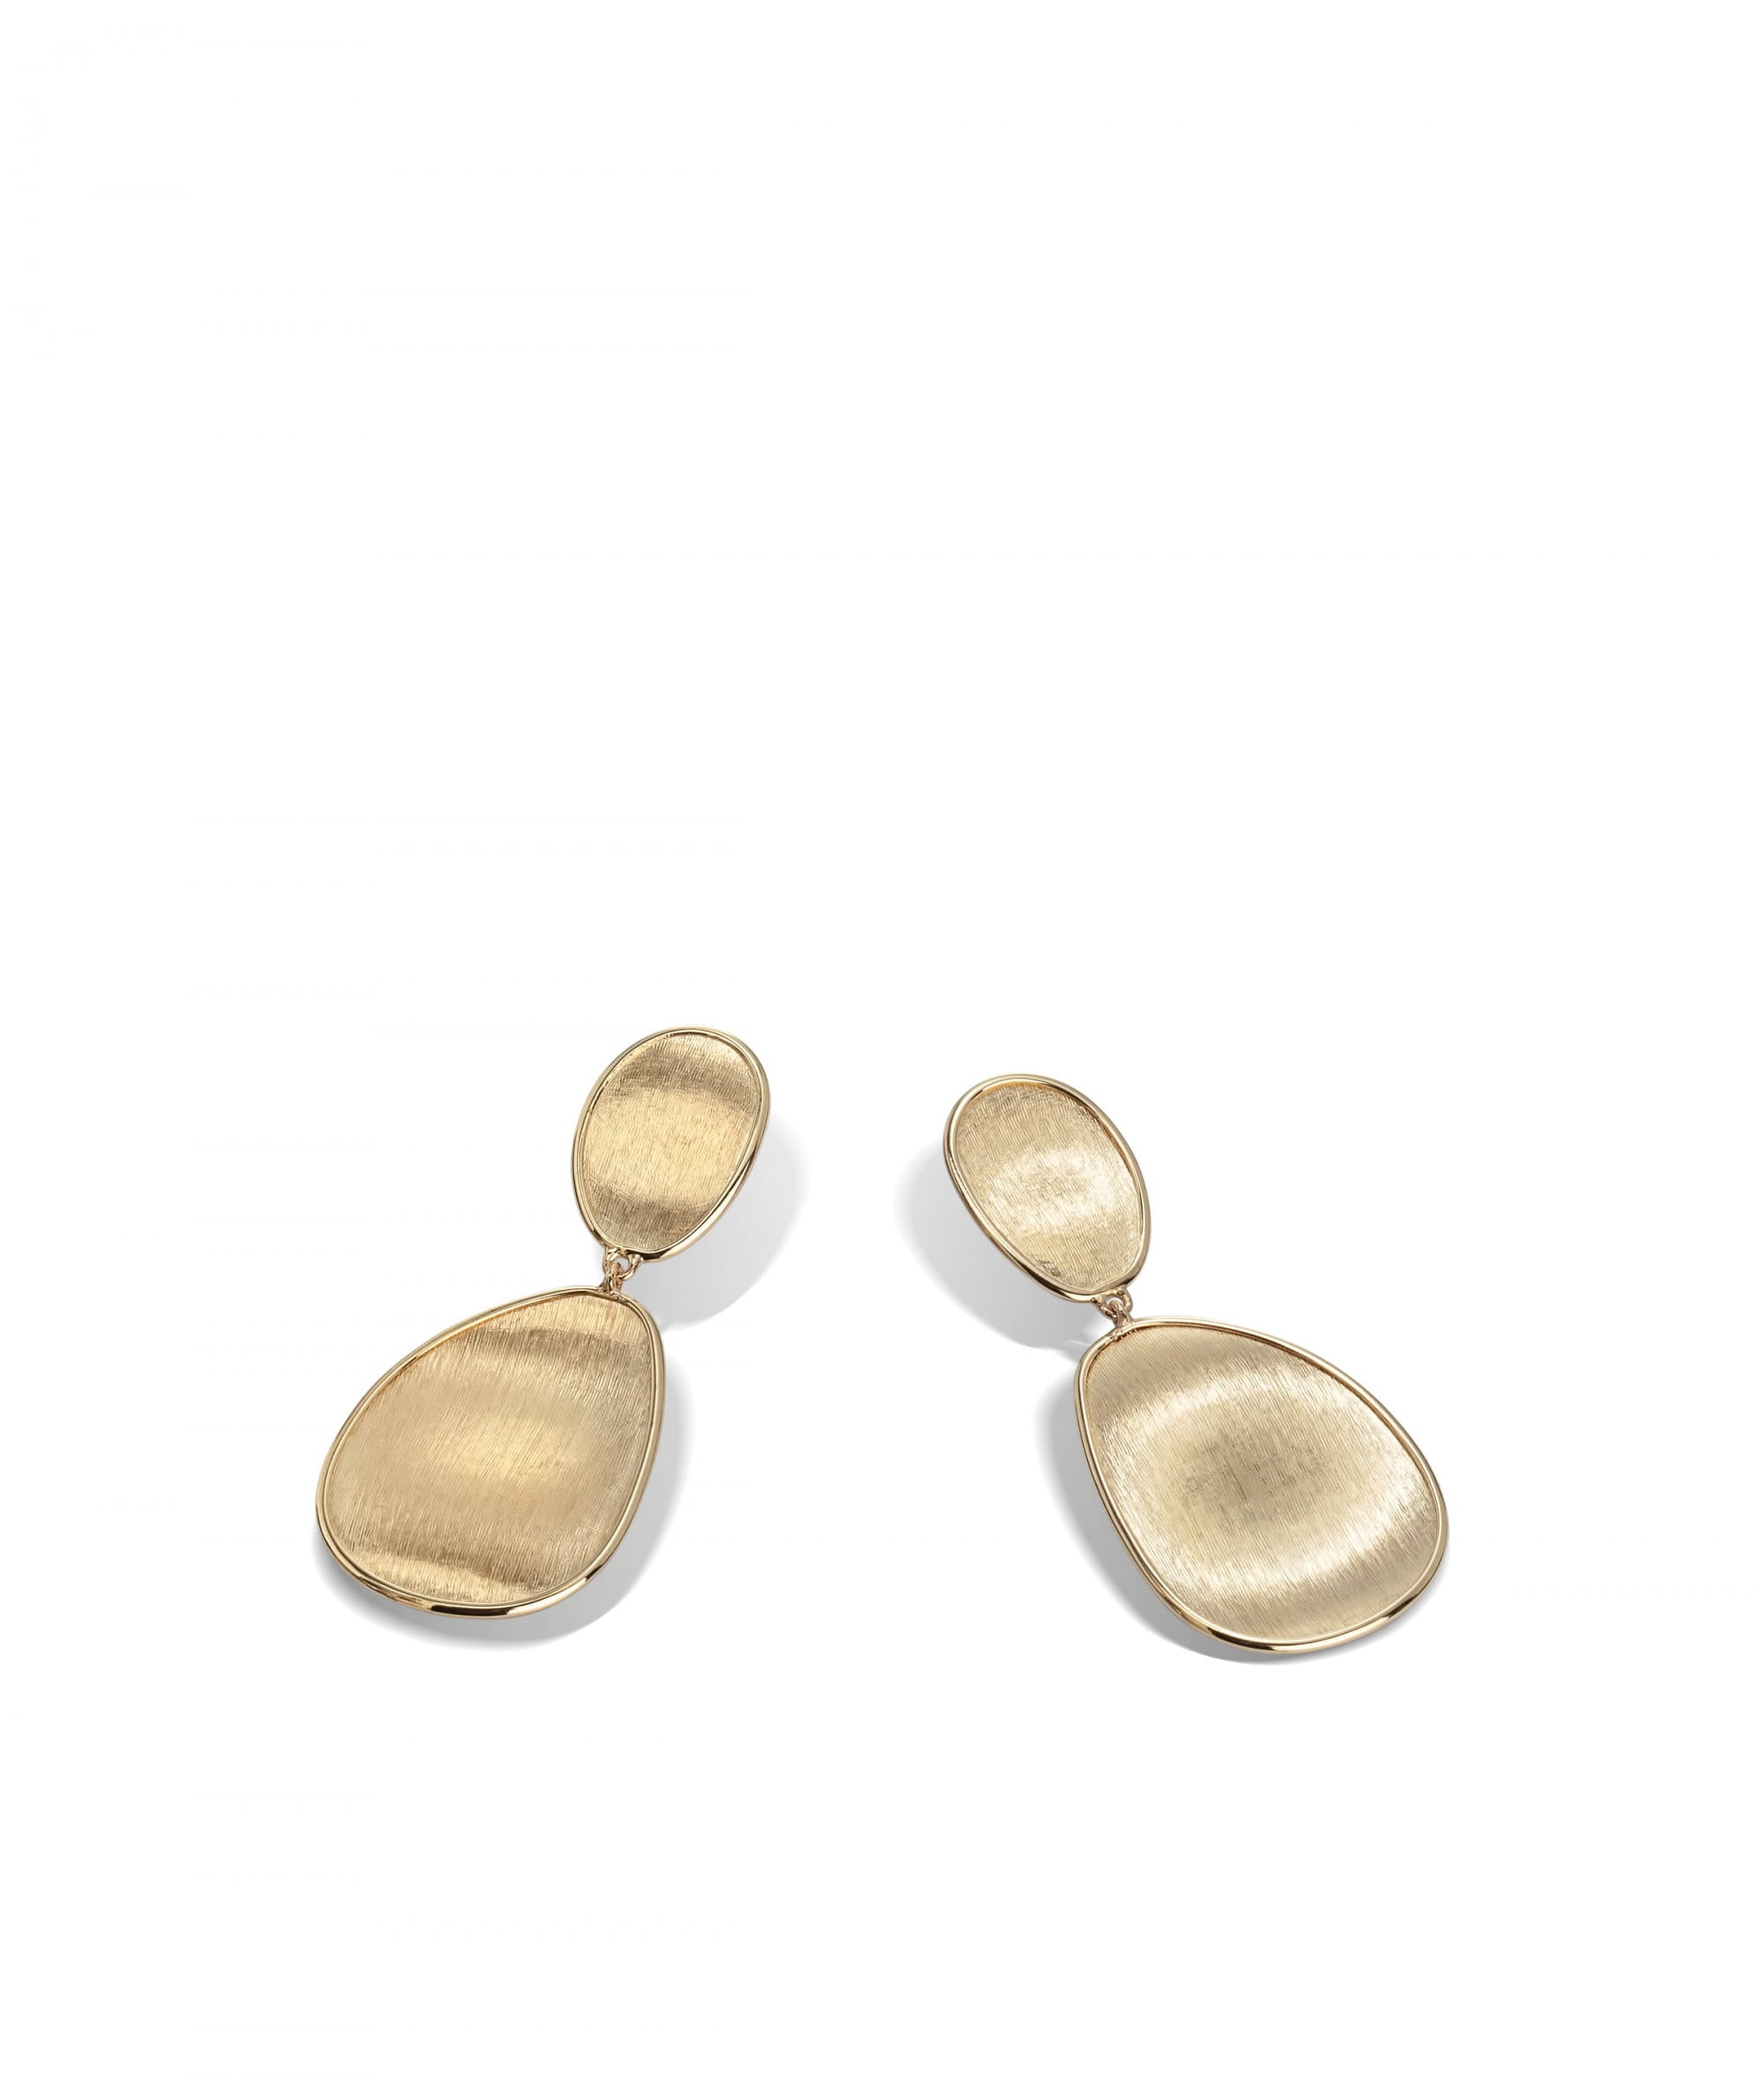 Lunaria Earrings in 18k Yellow Gold Double Drop Small - Orsini Jewellers NZ